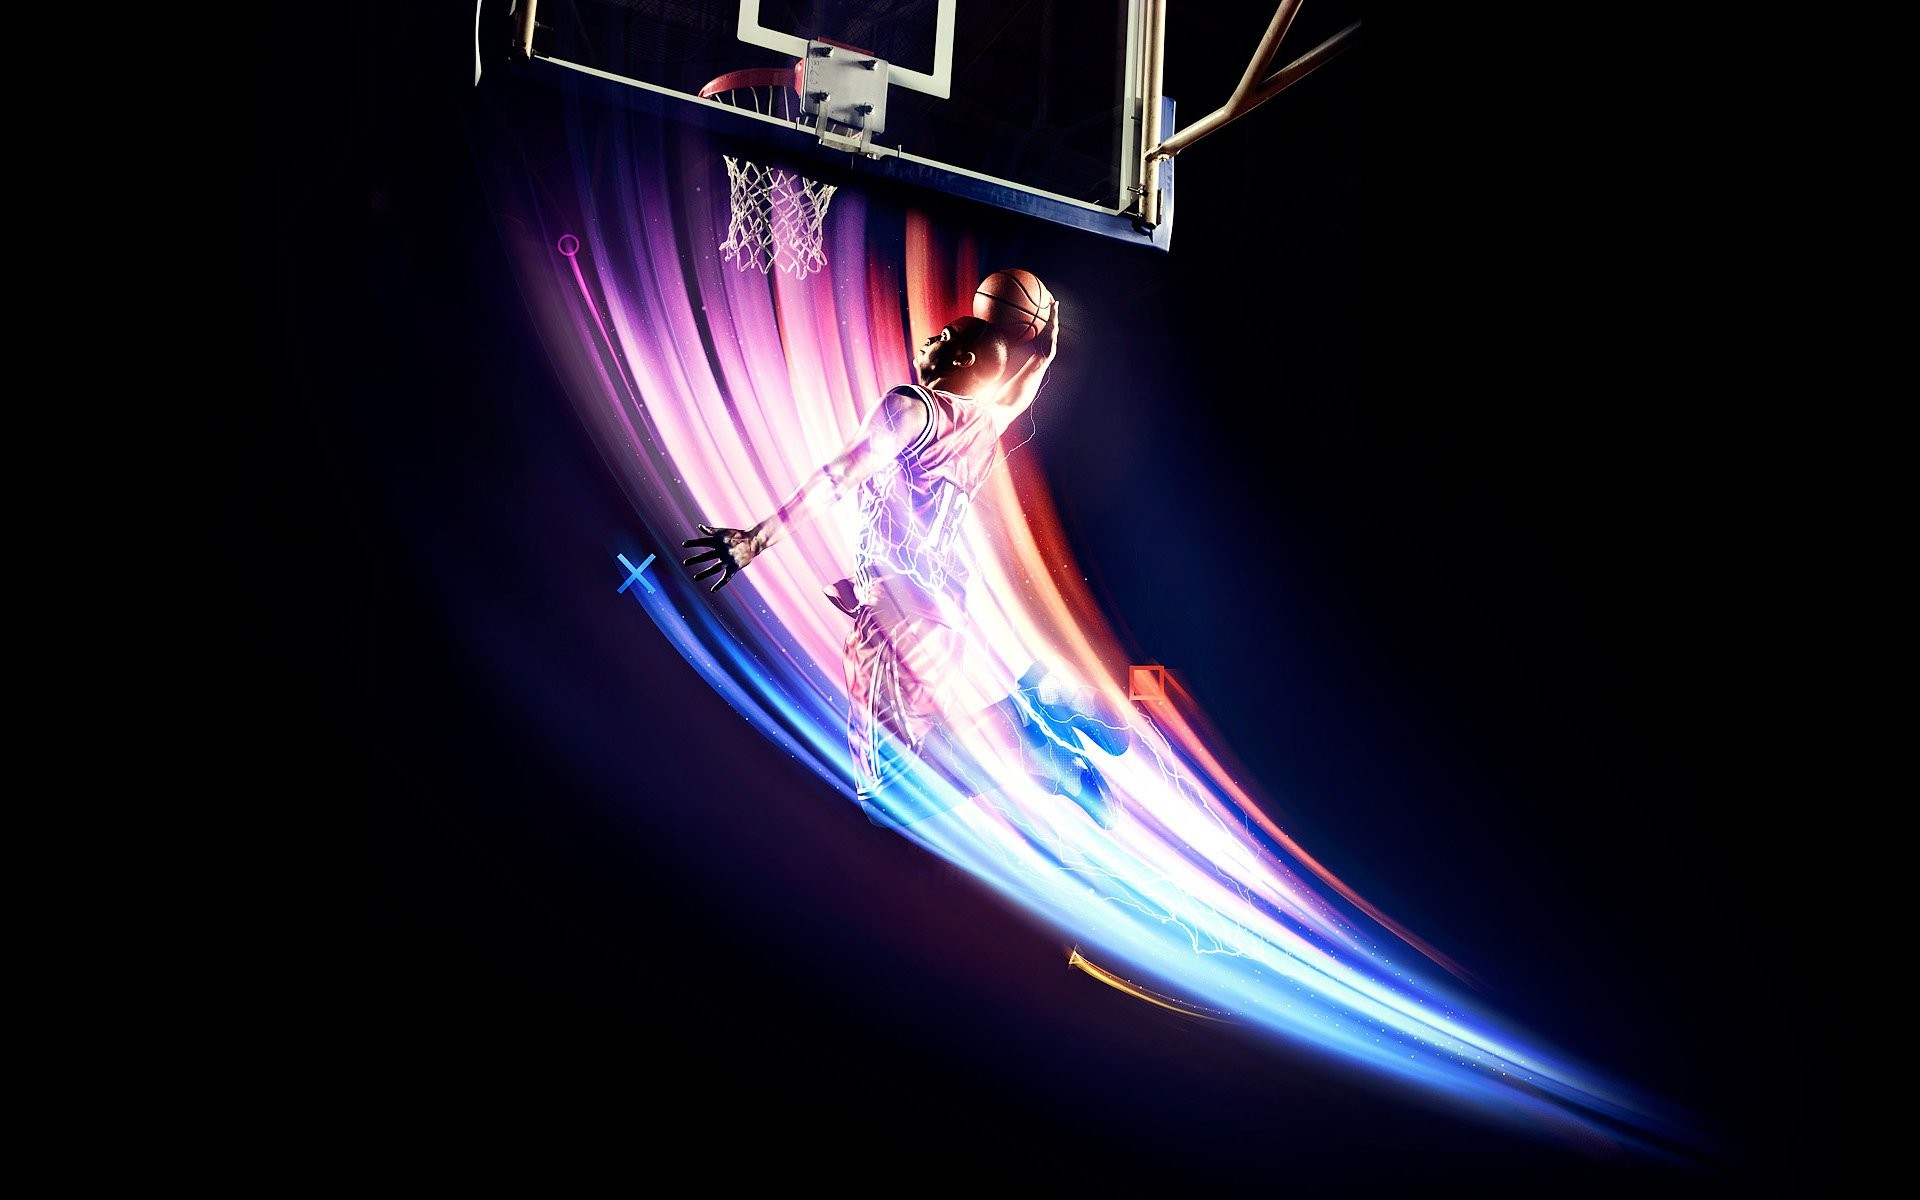 Cool Basketball Wallpapers Hd 61 Images